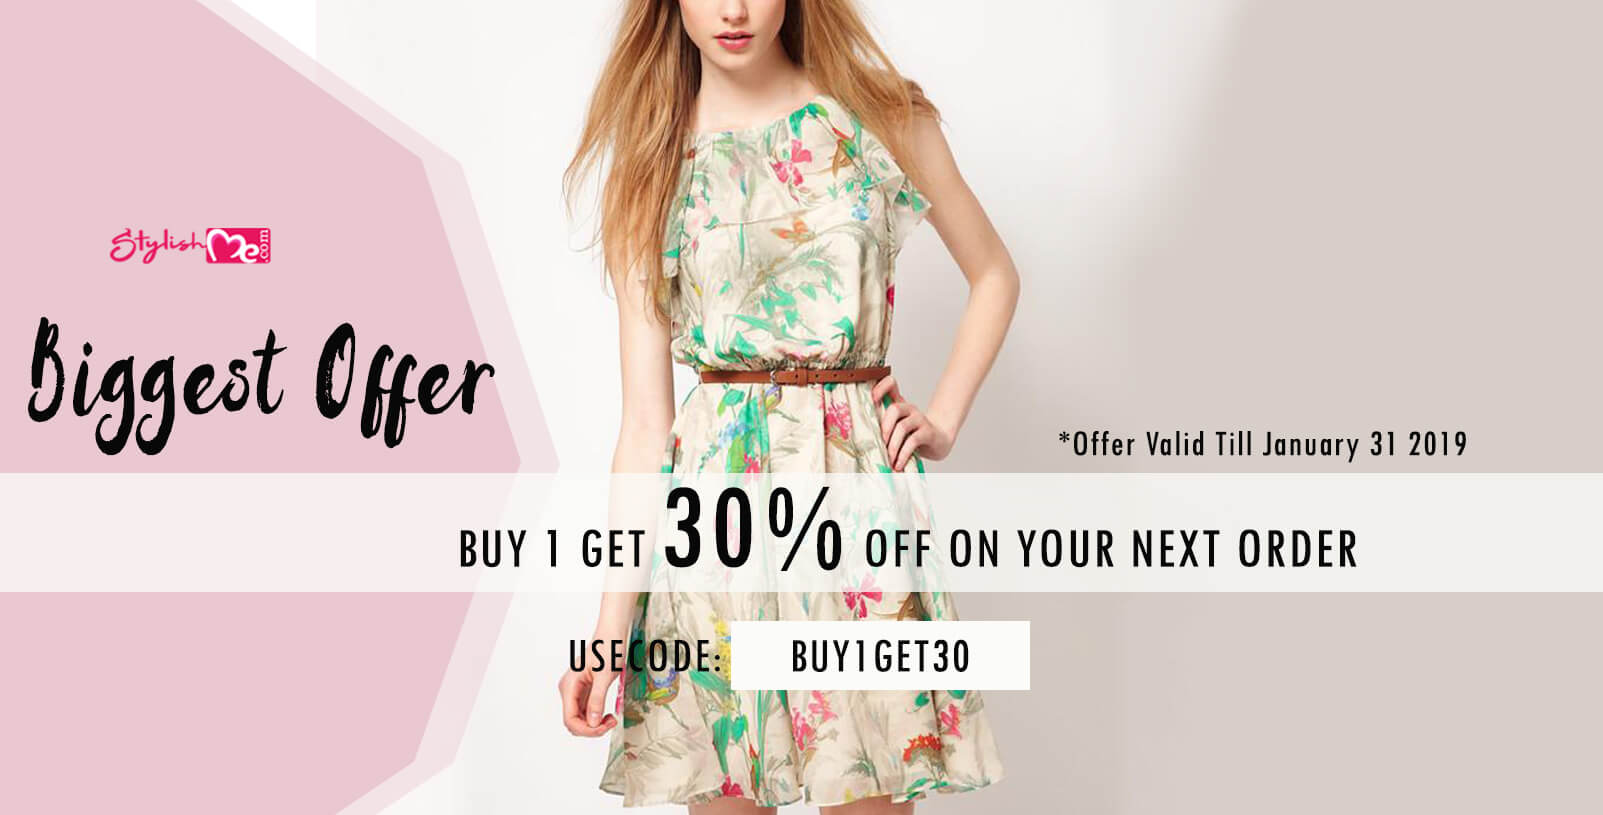 women clothing offers